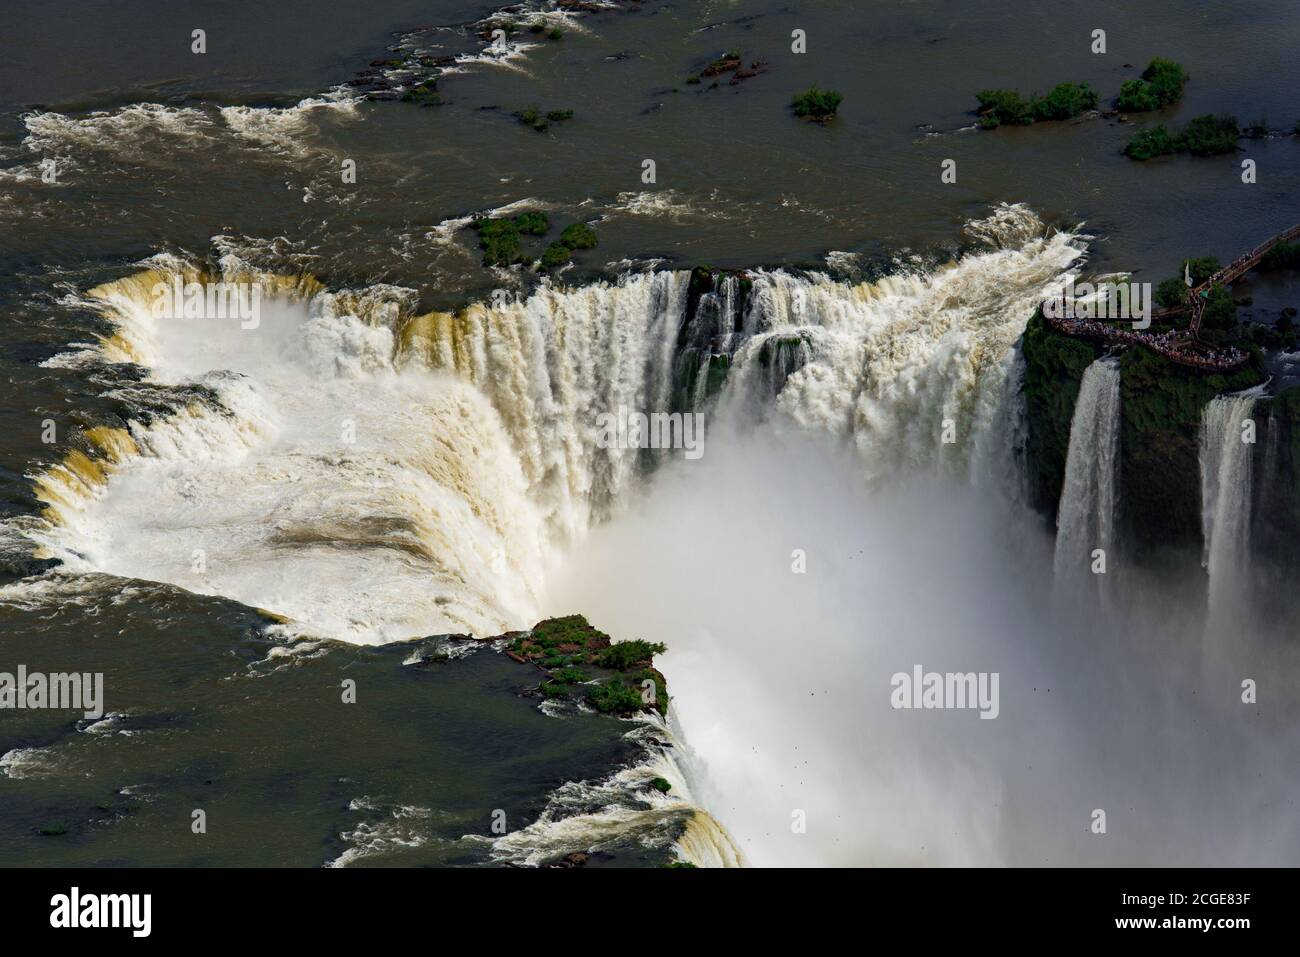 Aerial View of Iguazu Falls, One of the New 7 Wonders of Nature, in Brazil and Argentina Stock Photo